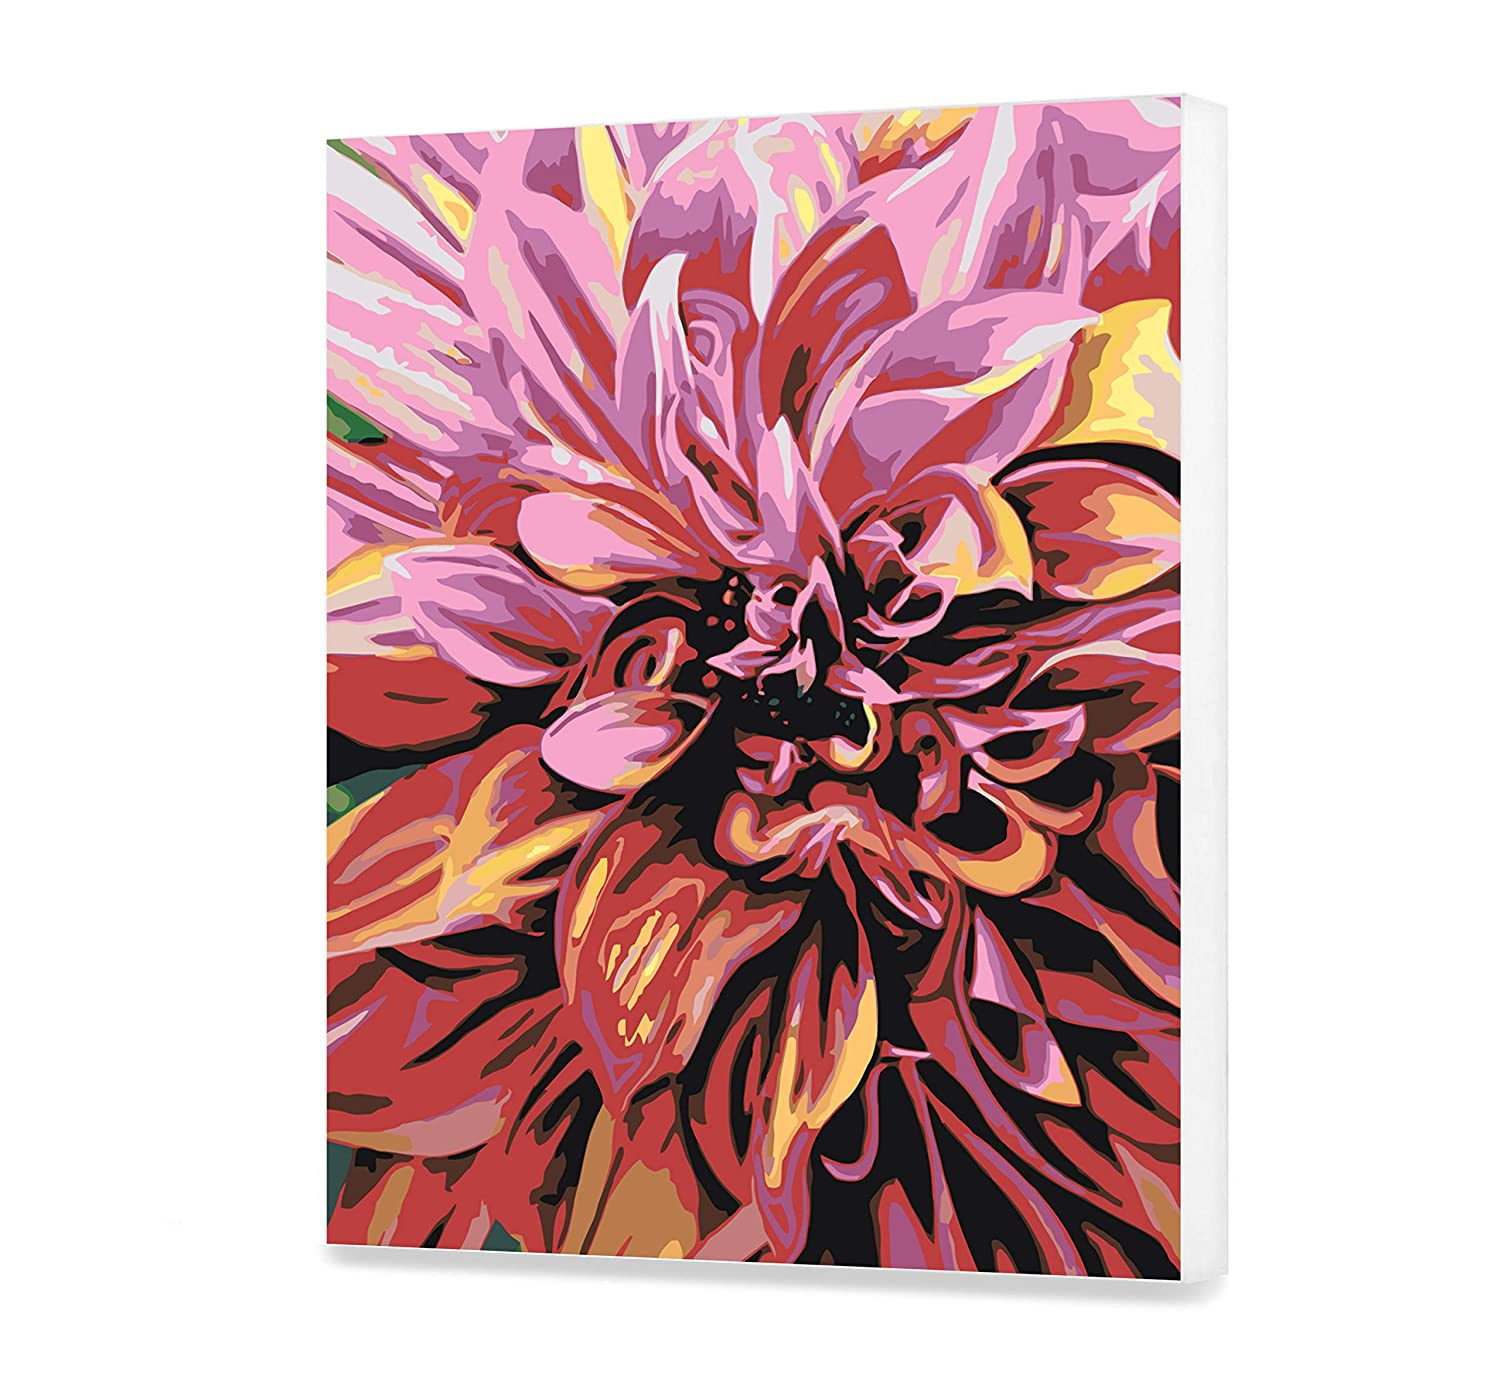 Dahlia Paint By Numbers For Adults Beautiful Acrylic Floral Painting On Canvas Flower Paint By Your Own DIY Kit Oil Wall Art Decoration